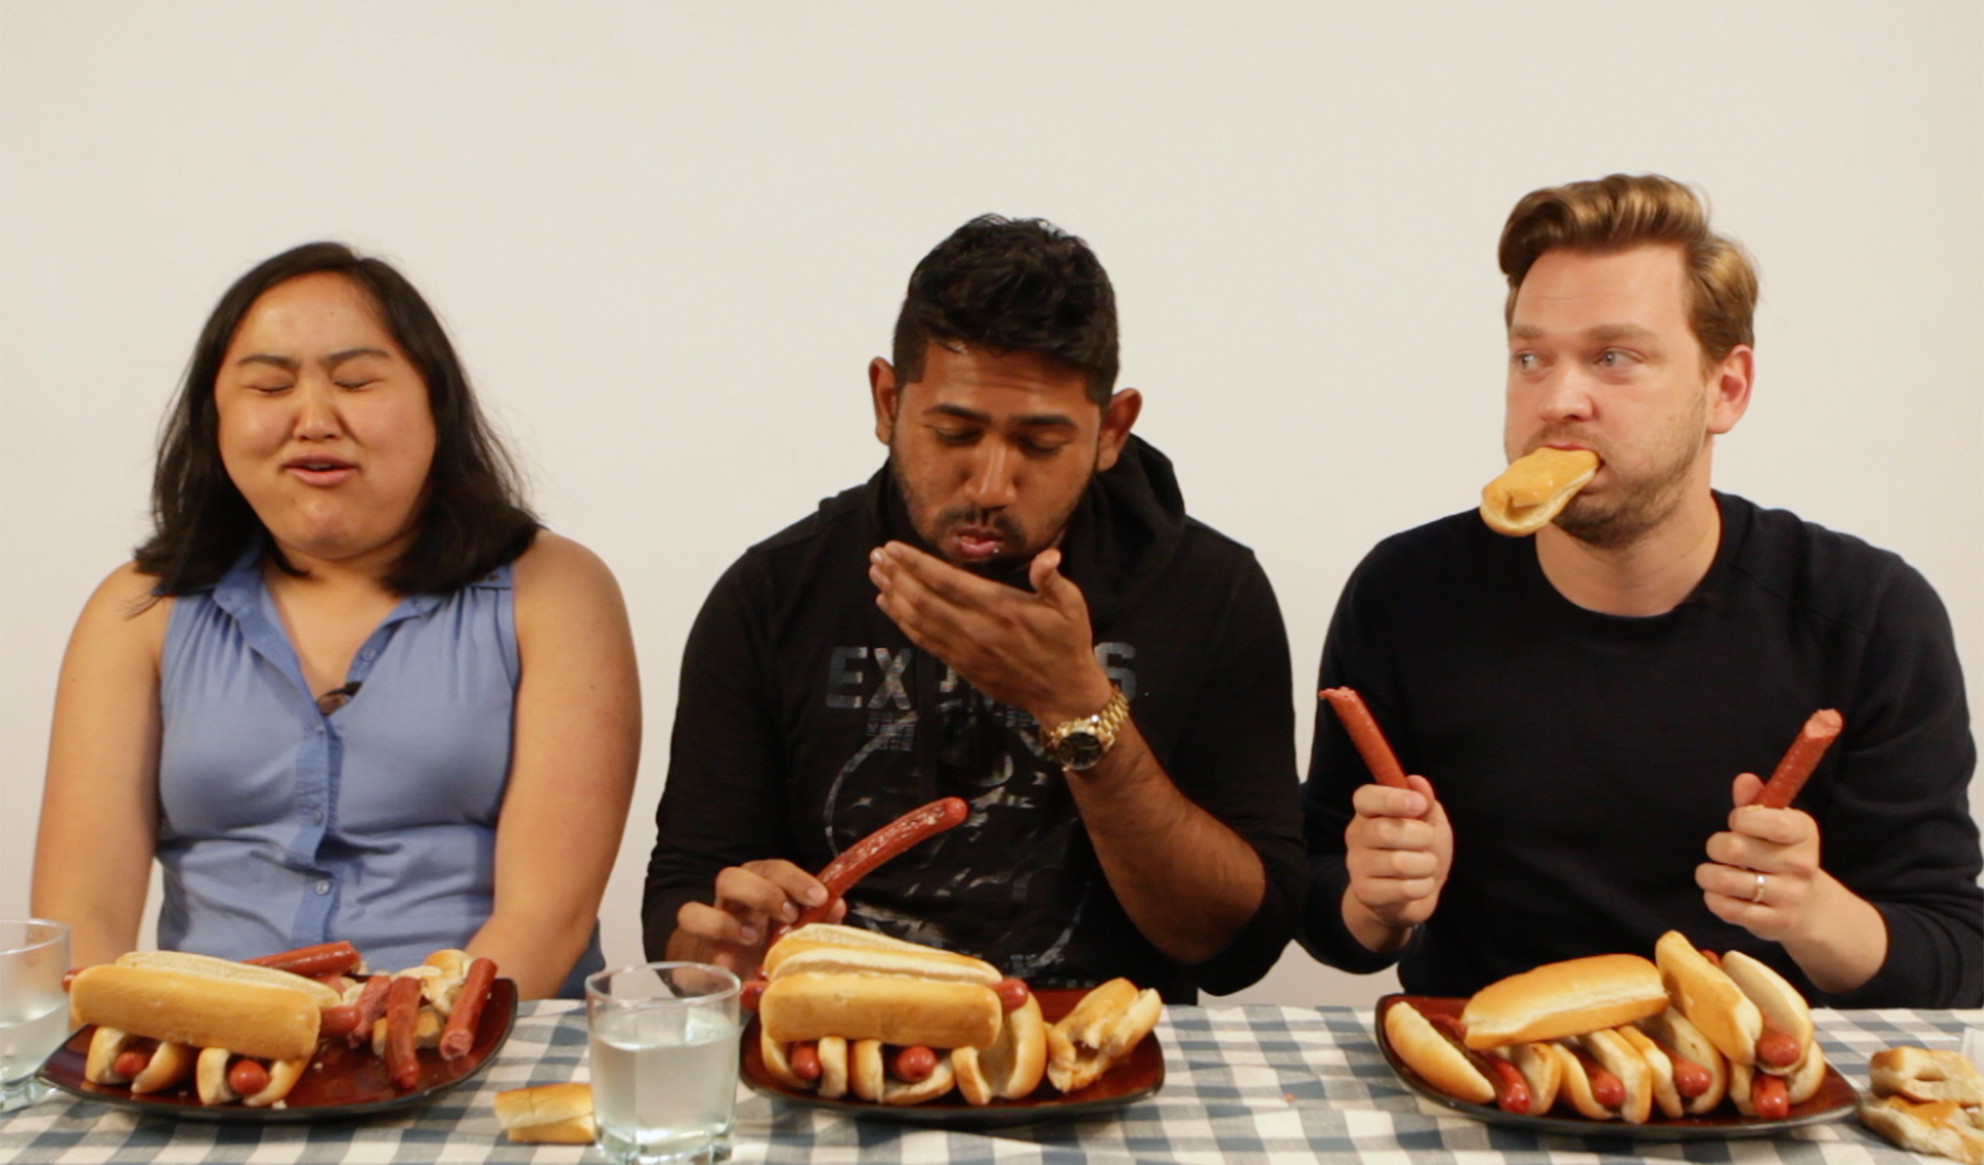 Watch the one-minute hot dog eating challenge